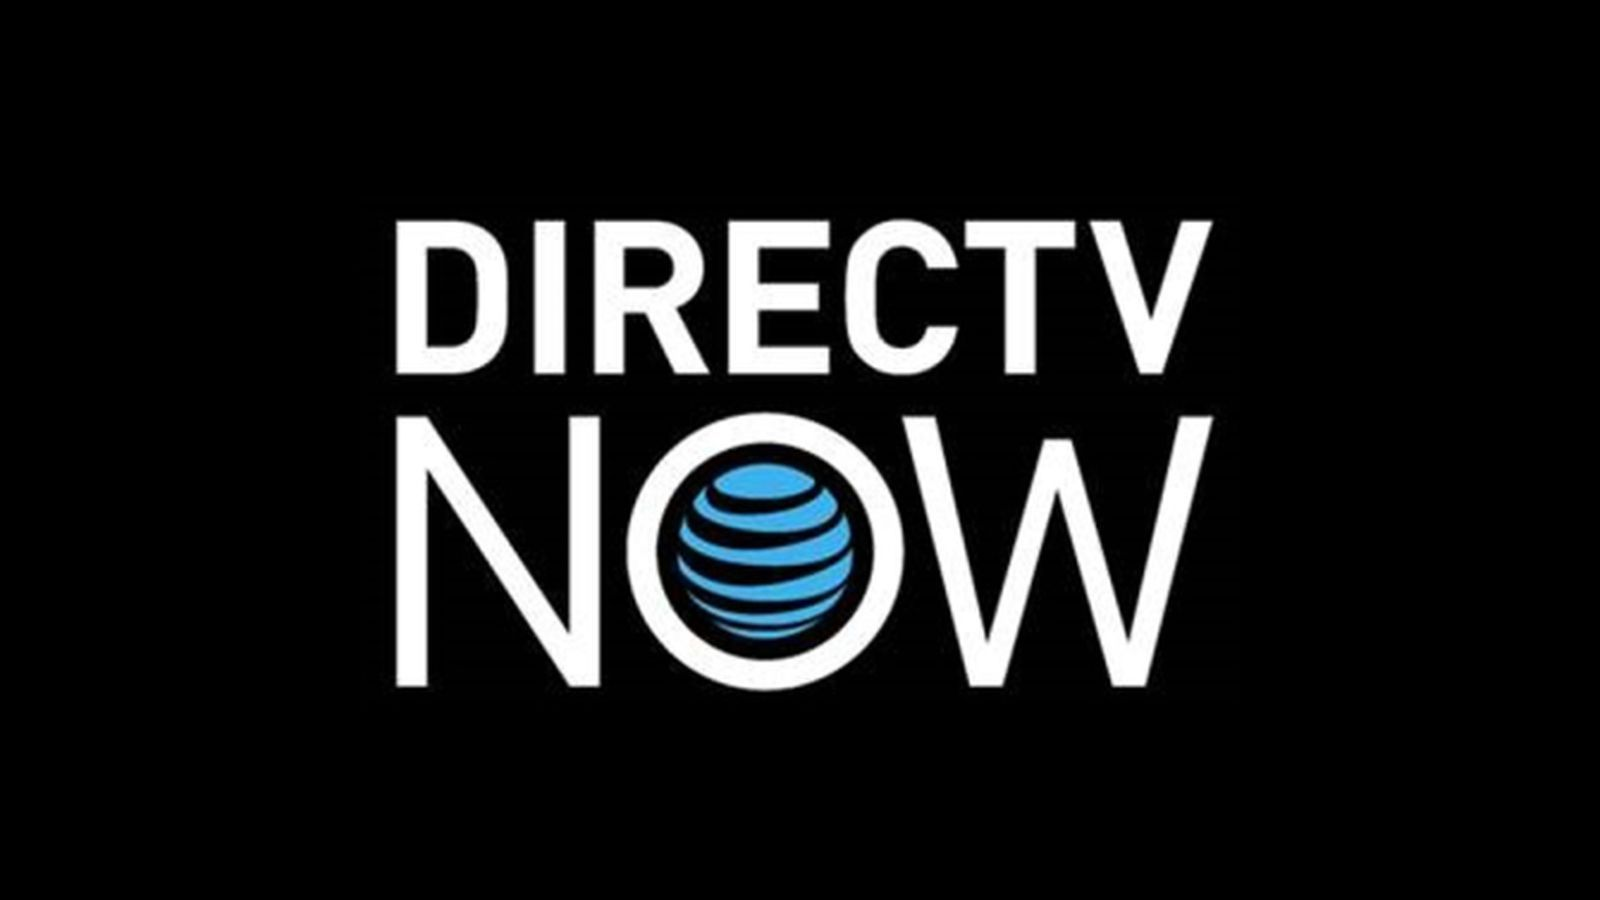 At T S Directv Now Launches November 30th With Over 100 Channels Of Streaming Tv Tv Services Live Tv Streaming Live Tv